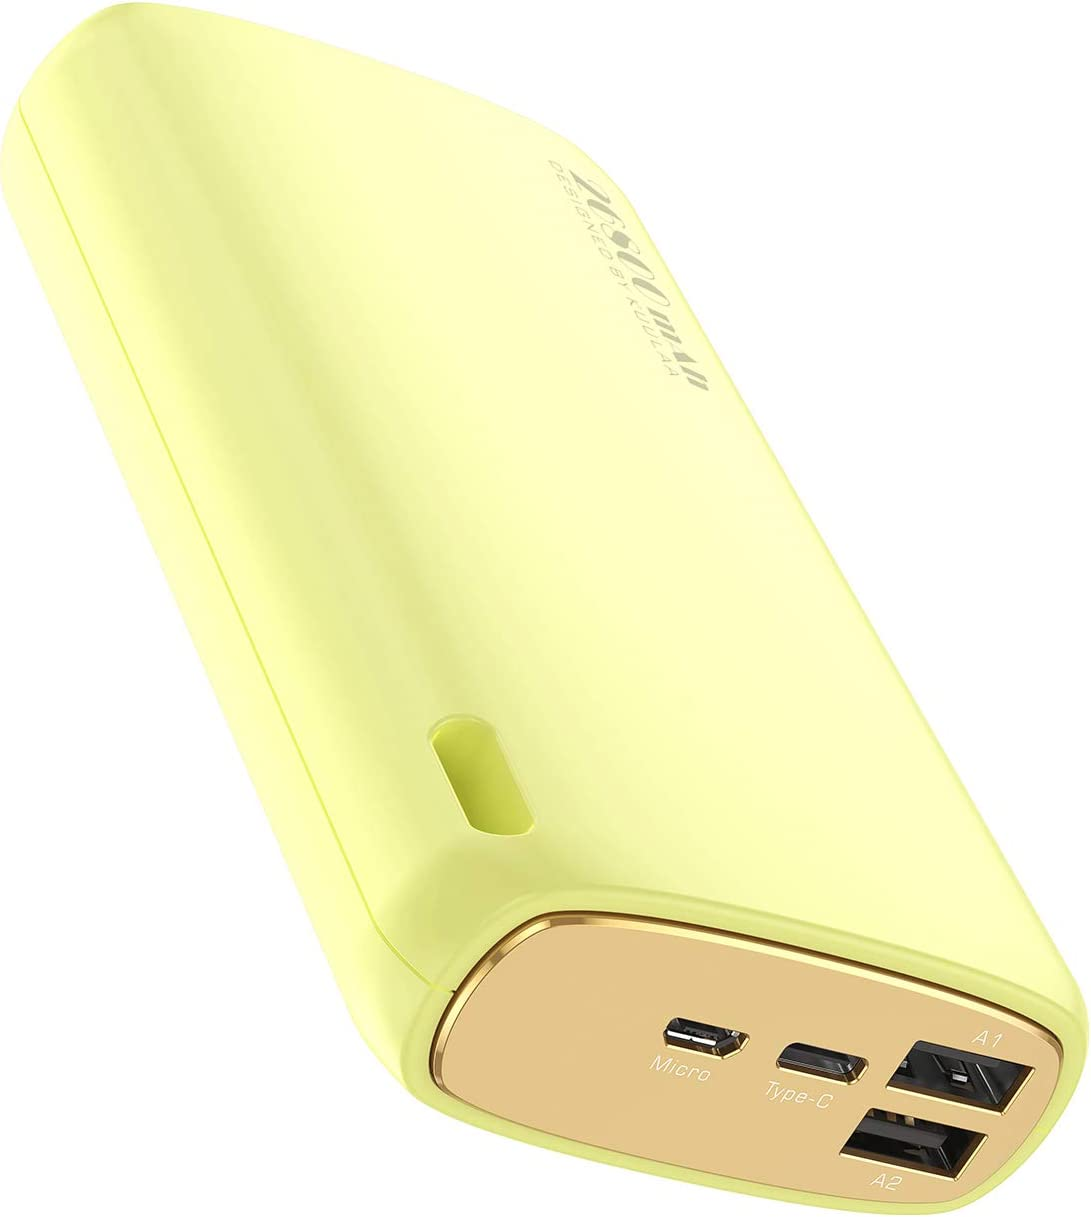 Portable Charger 26800mAh, KUULAA Power Bank Ultra-High Capacity Portable Battery, 5V 2.1A External Battery Pack Dual-input and Dual-output Cell Phone Battery Charger for iPhone Samsung & etc (Yellow)